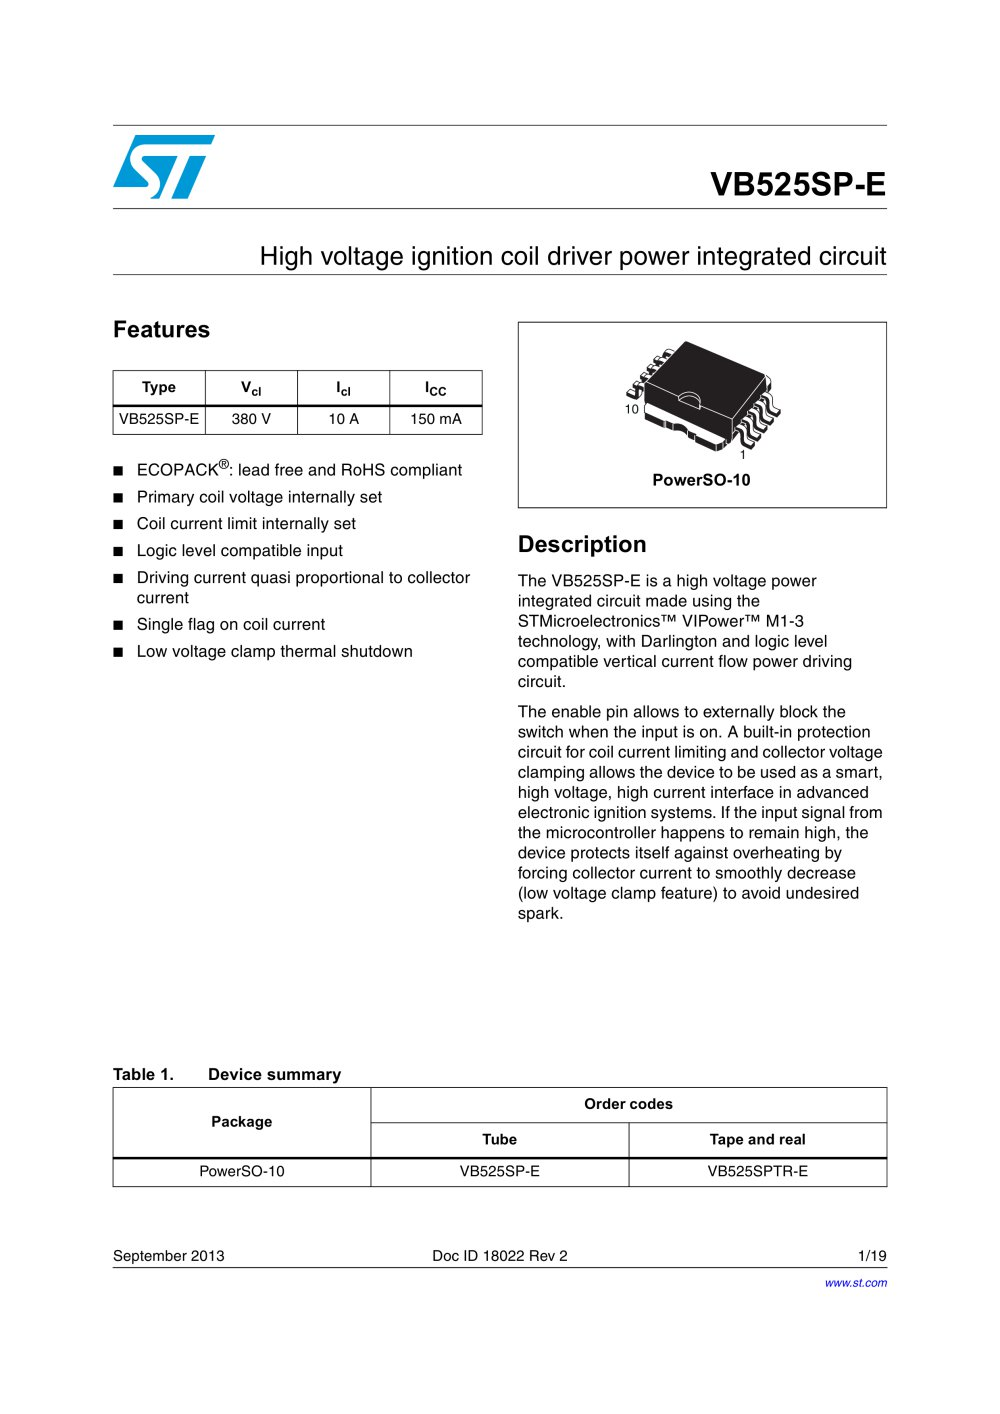 VB525SP-EHigh voltage ignition coil driver power integrated circuit - 1 /  19 Pages